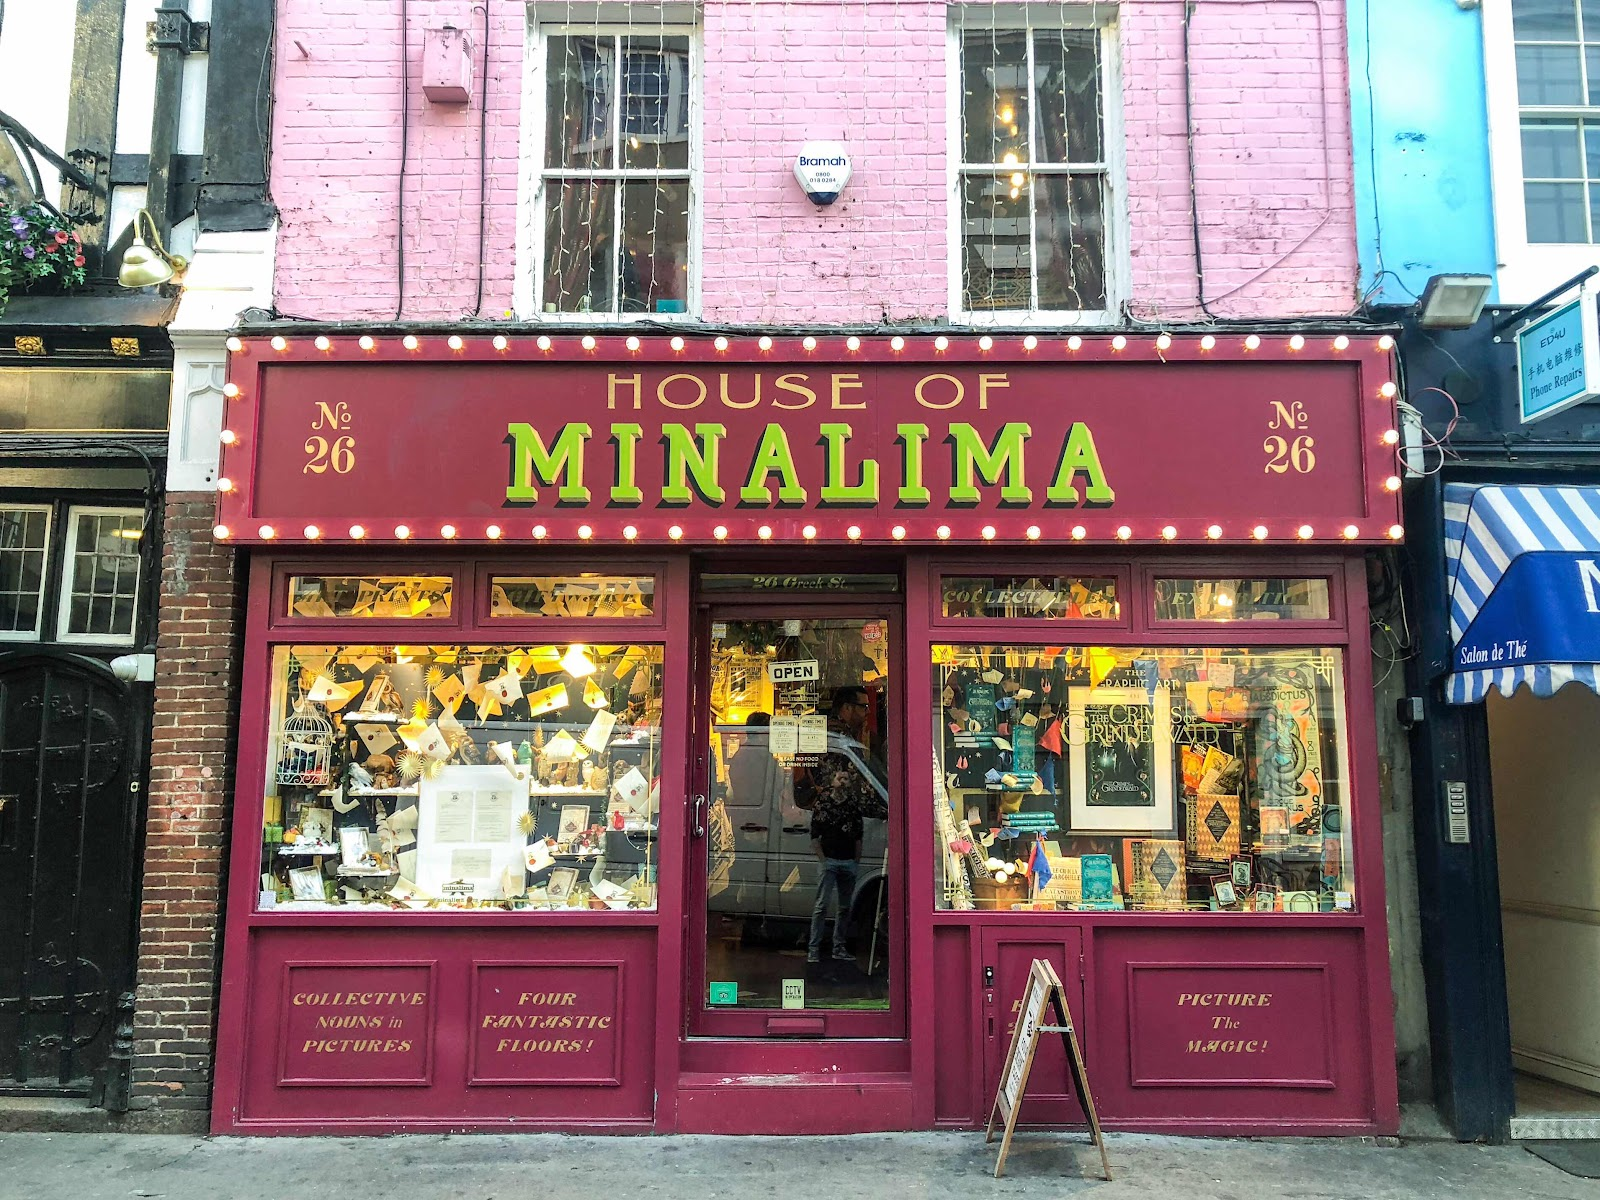 london-lifestyle-blog-top-10-things-to-do-in-soho-london-house-of-mina-lima-harry-potter